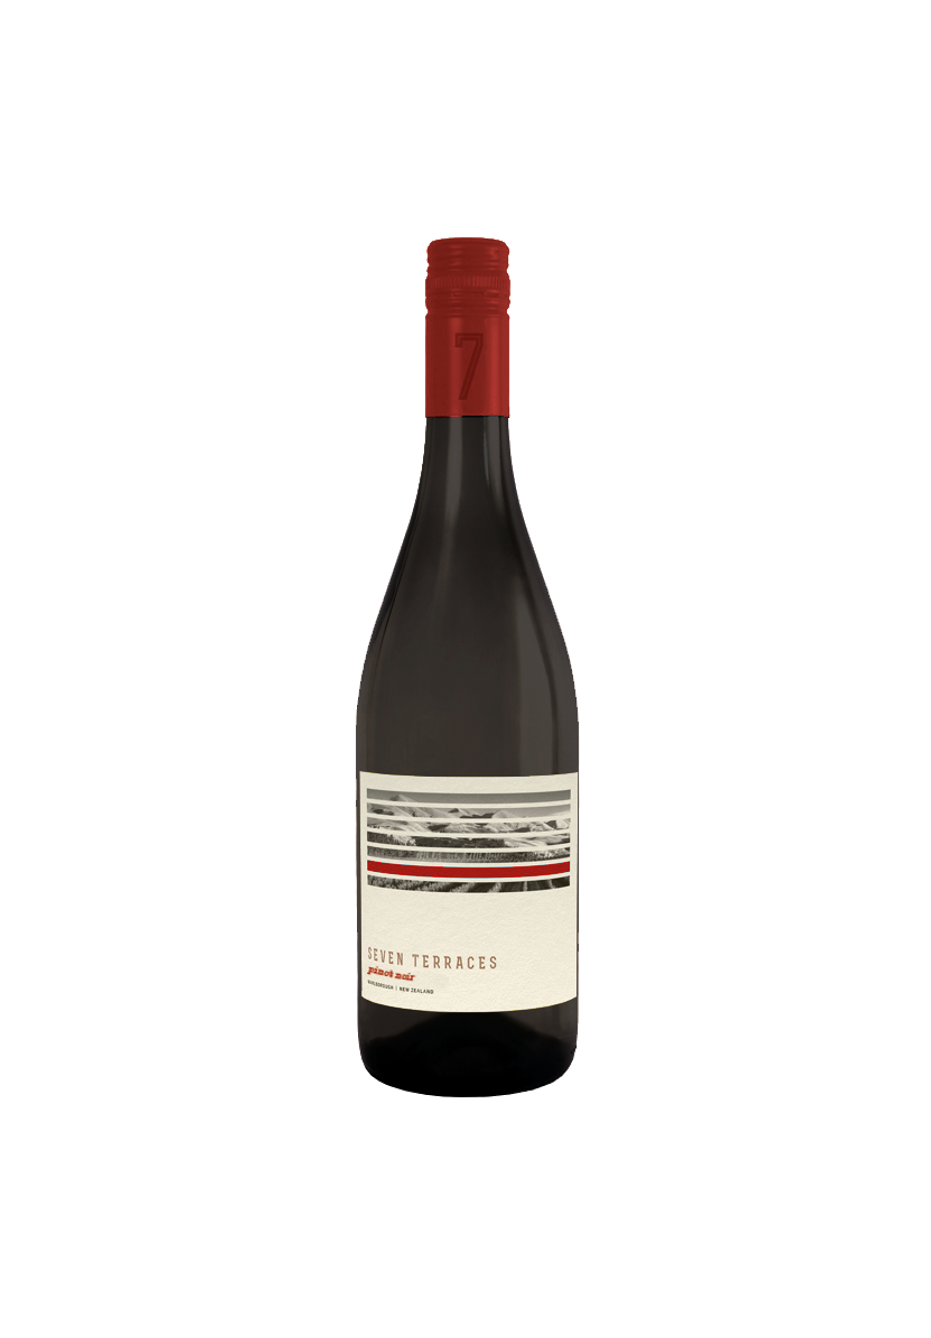 Seven Terraces Marlboough Pinot Noir 2016